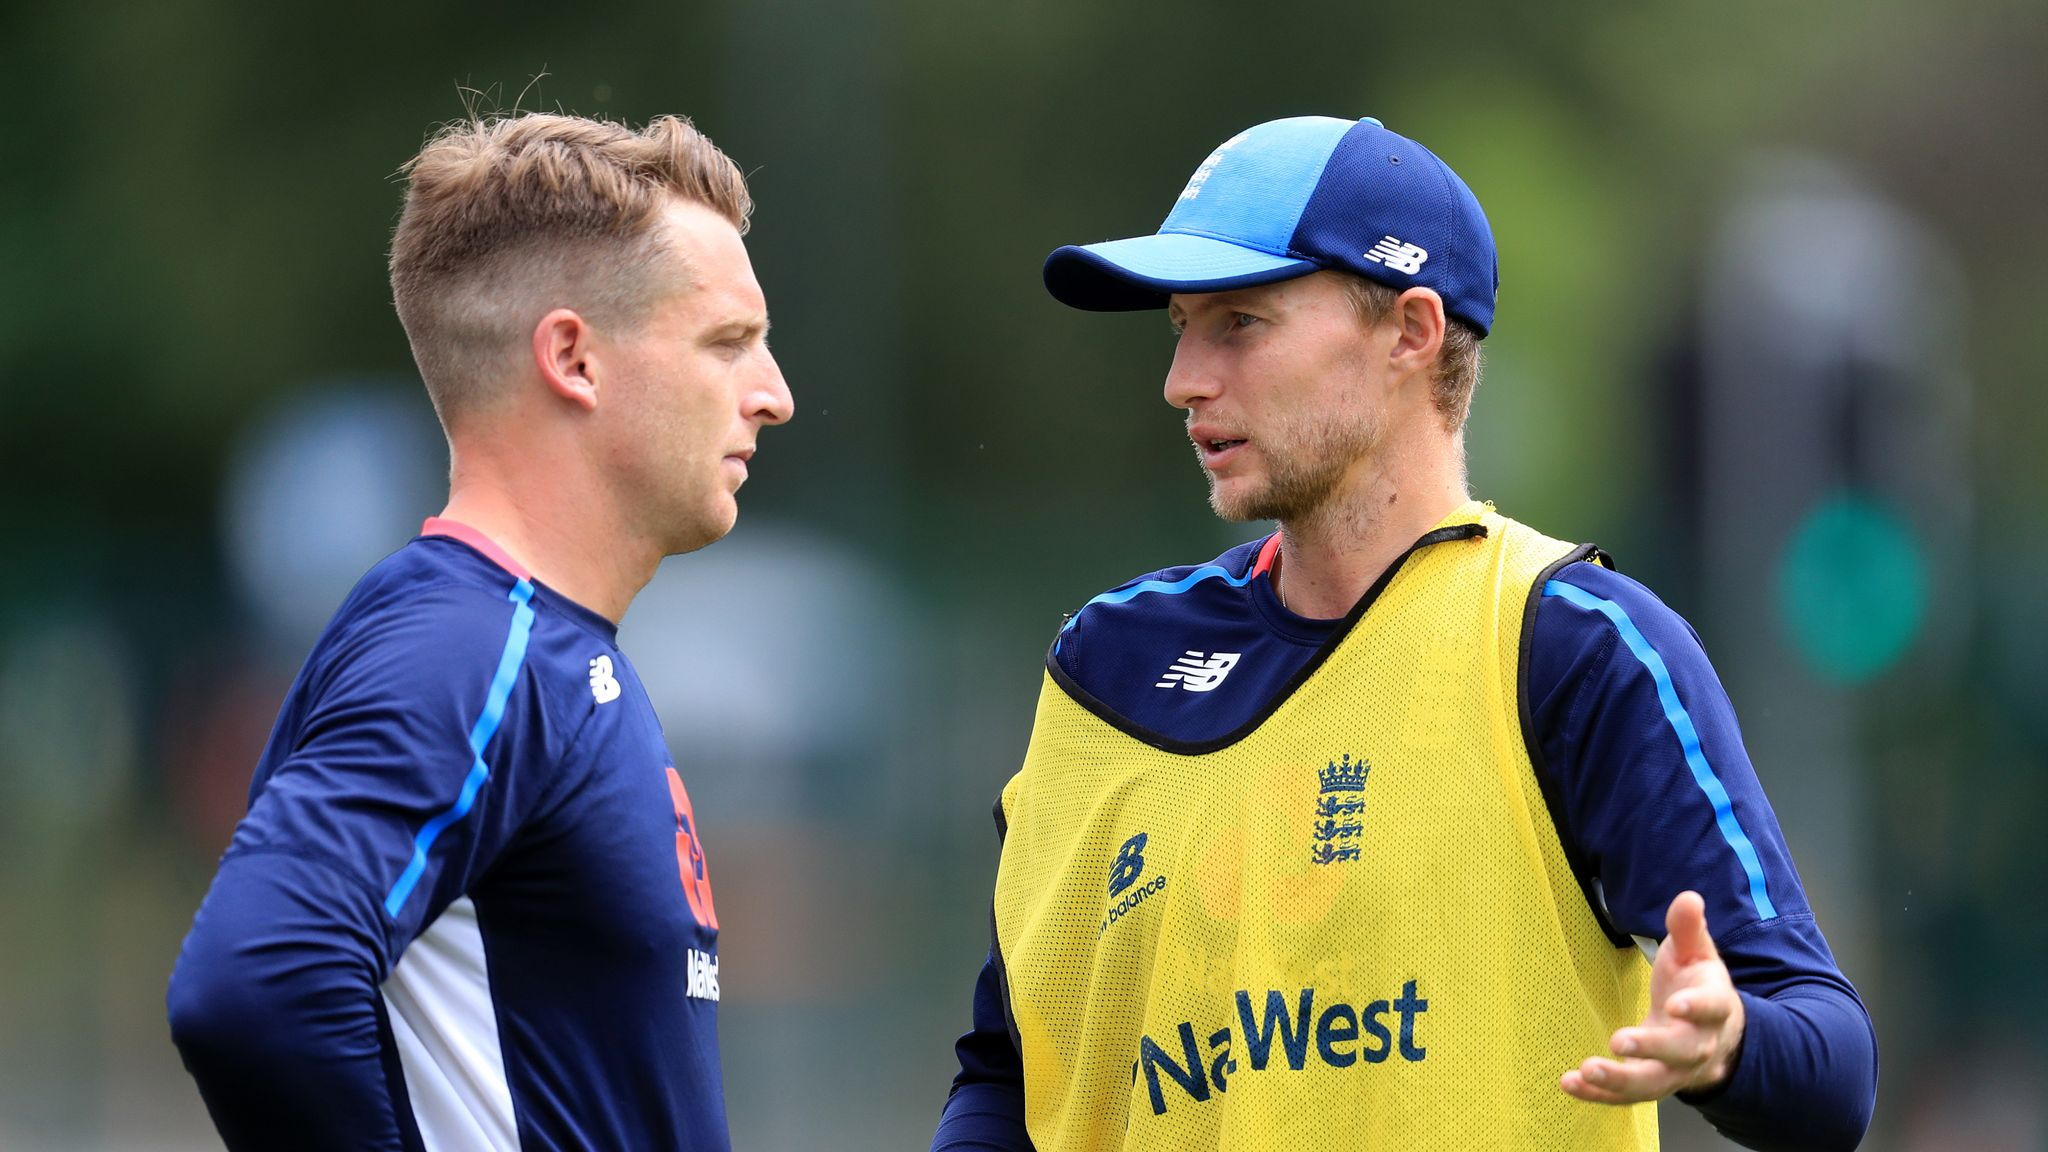 cff8a9593 Jos Buttler should replace Joe Root as England Test captain, says ...